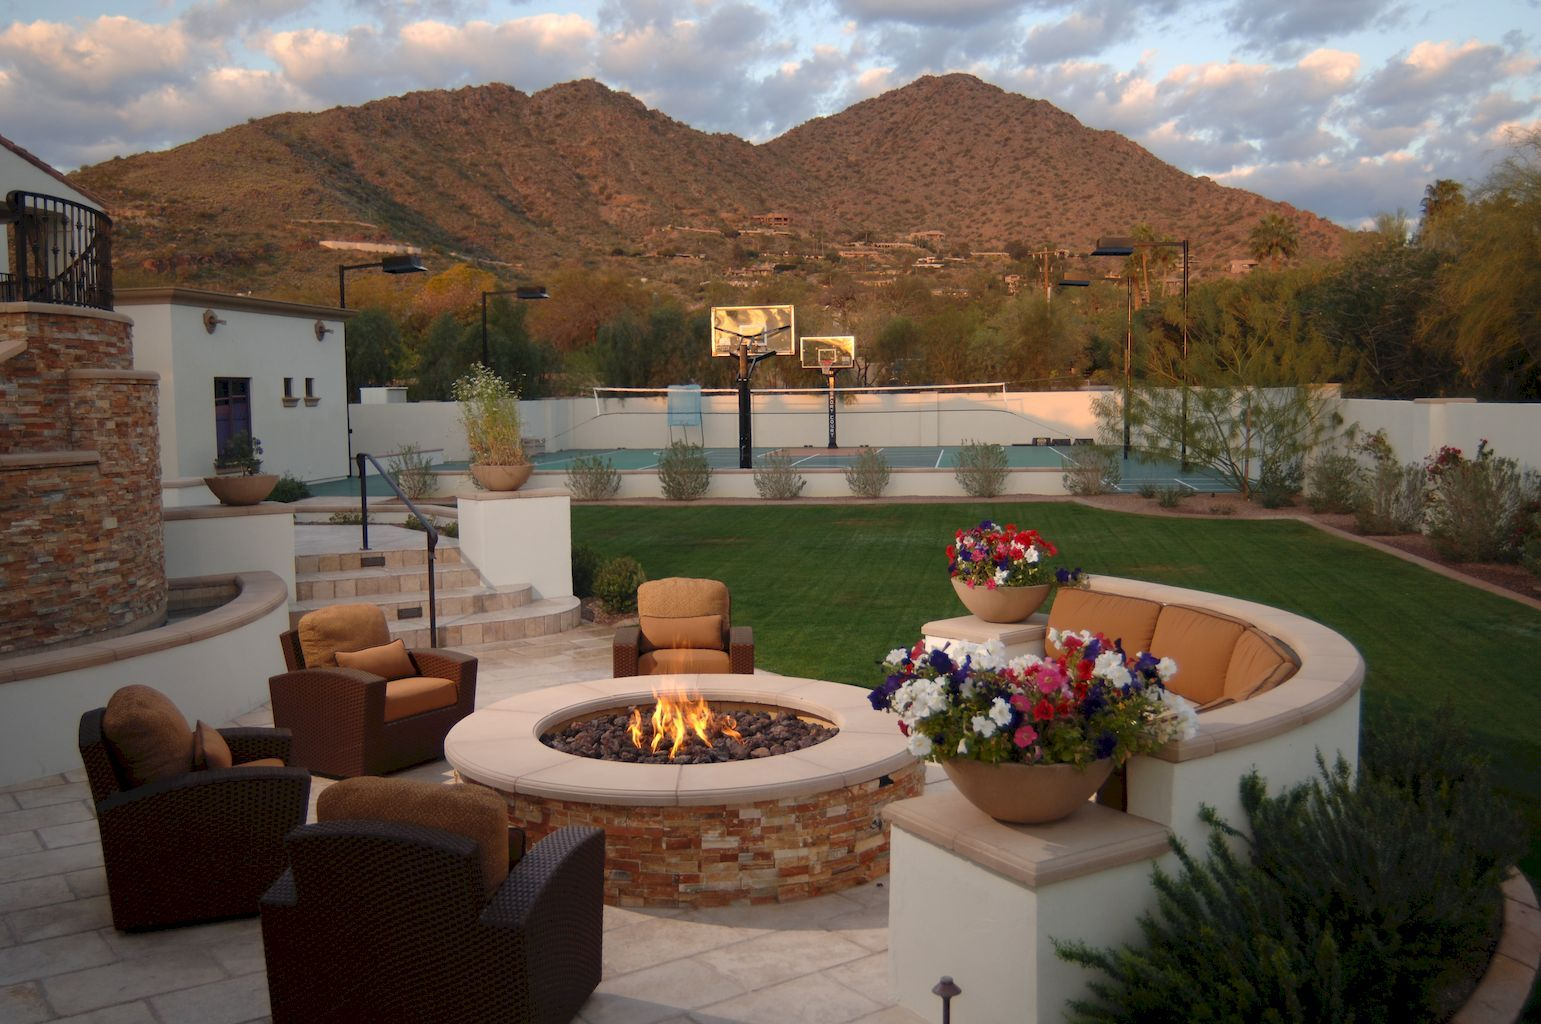 40 Beautiful Arizona Backyard Ideas On A Budget | Arizona ... on Backyard Desert Landscaping Ideas On A Budget  id=32425